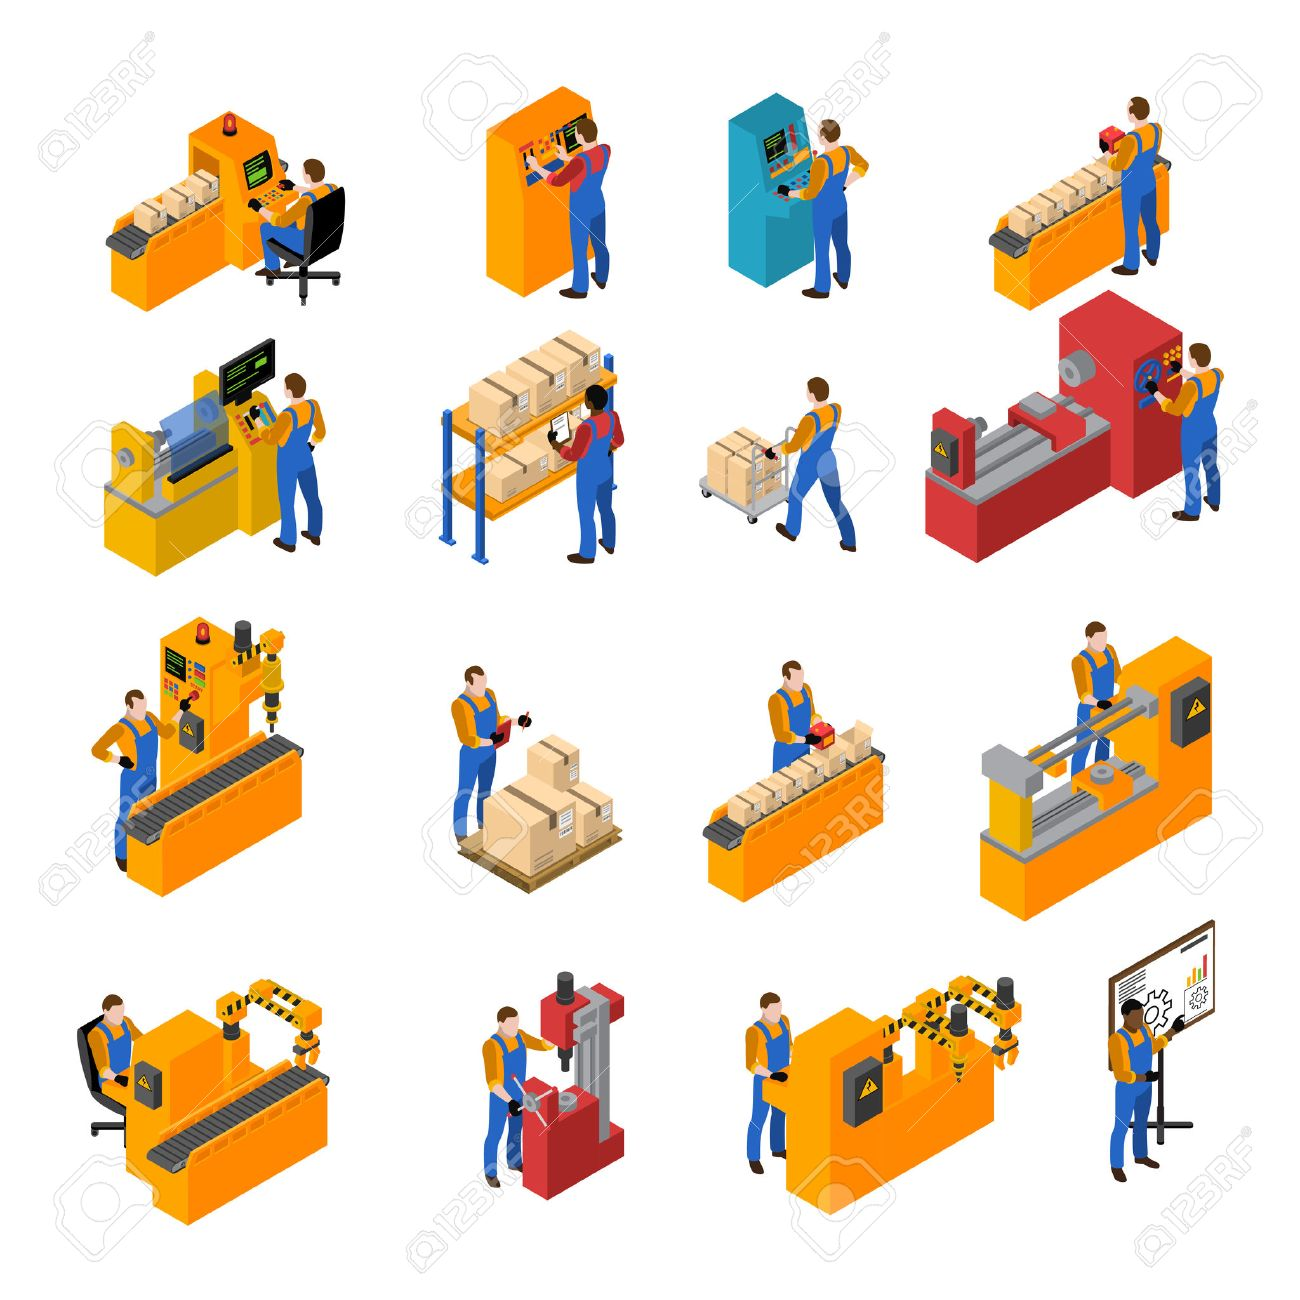 Factory workers isometric icons set with production symbols isolated vector illustration Stock Vector - 62539531